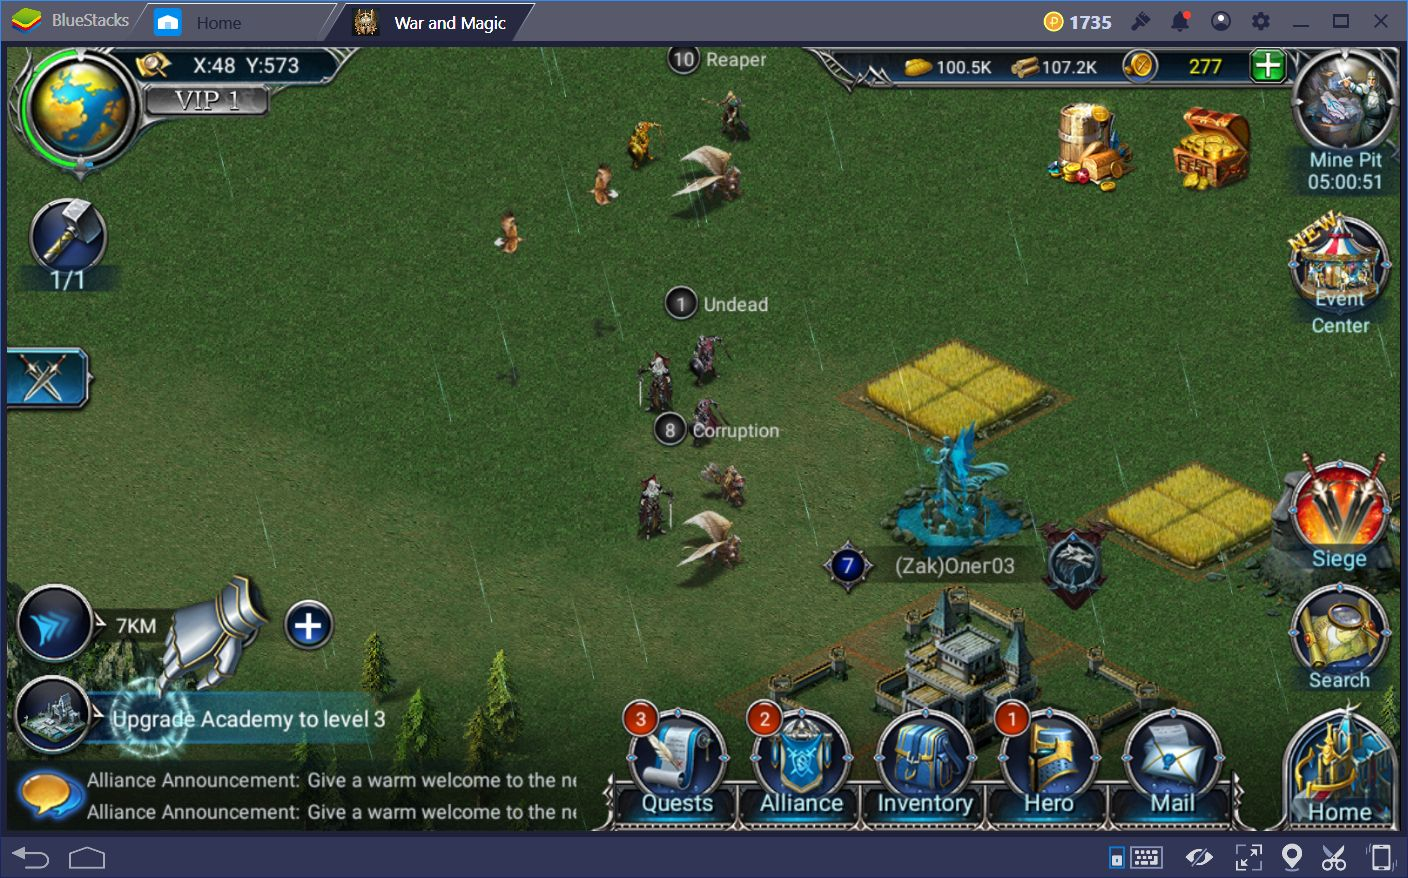 A guide to world map creatures in war and magic part ii bluestacks keep in mind that as your level increases and you get access to better troops you might feel the desire to challenge bigger and stronger enemies gumiabroncs